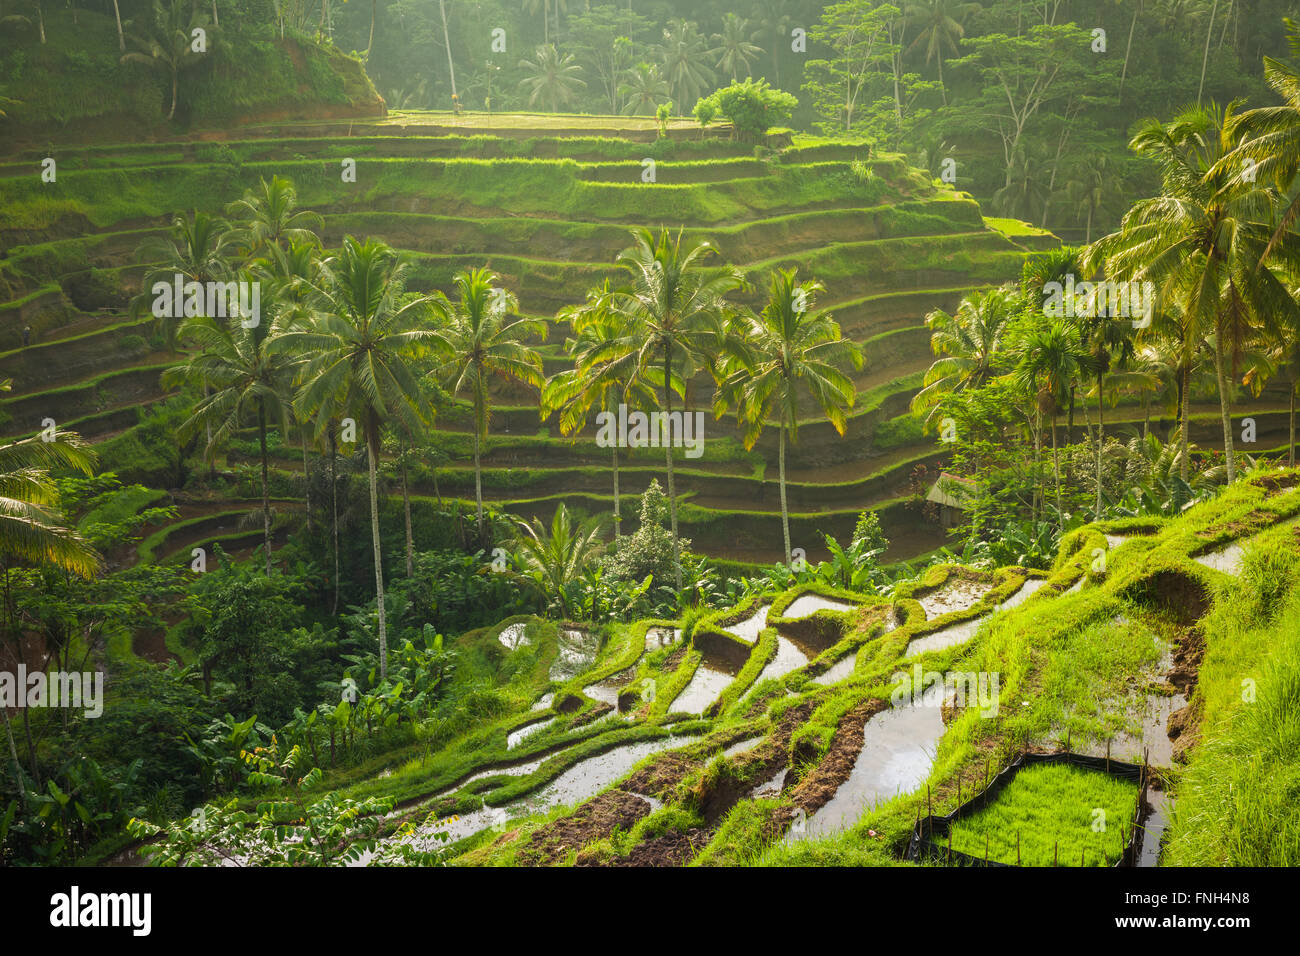 Beautiful rice terraces in the moring light near Tegallalang village, Ubud, Bali, Indonesia. Stock Photo